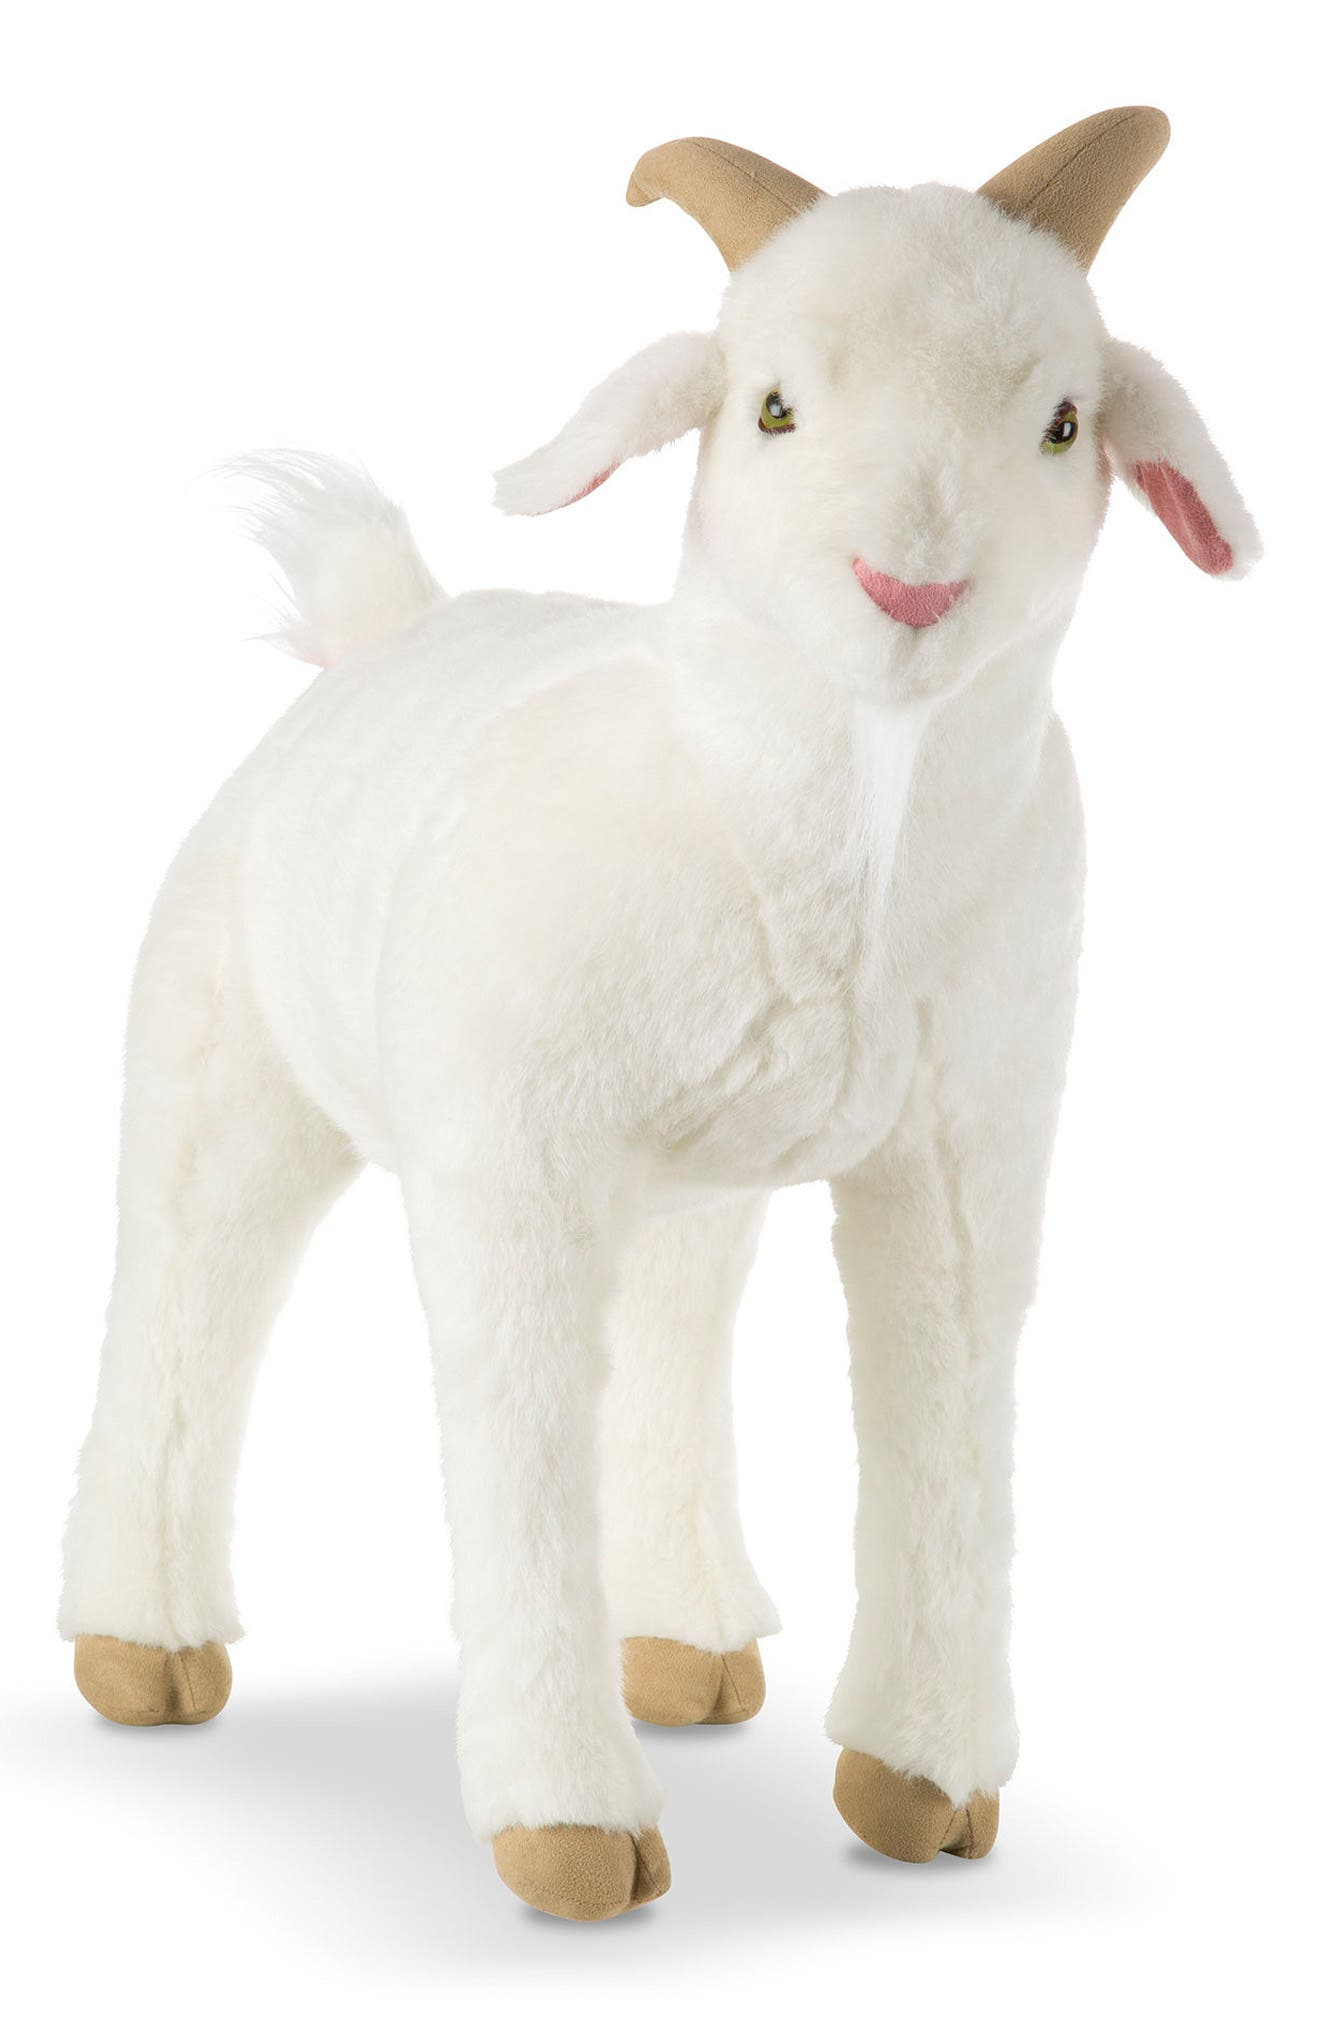 Giant Goat Plush Toy,                             Main thumbnail 1, color,                             WHITE MULTI